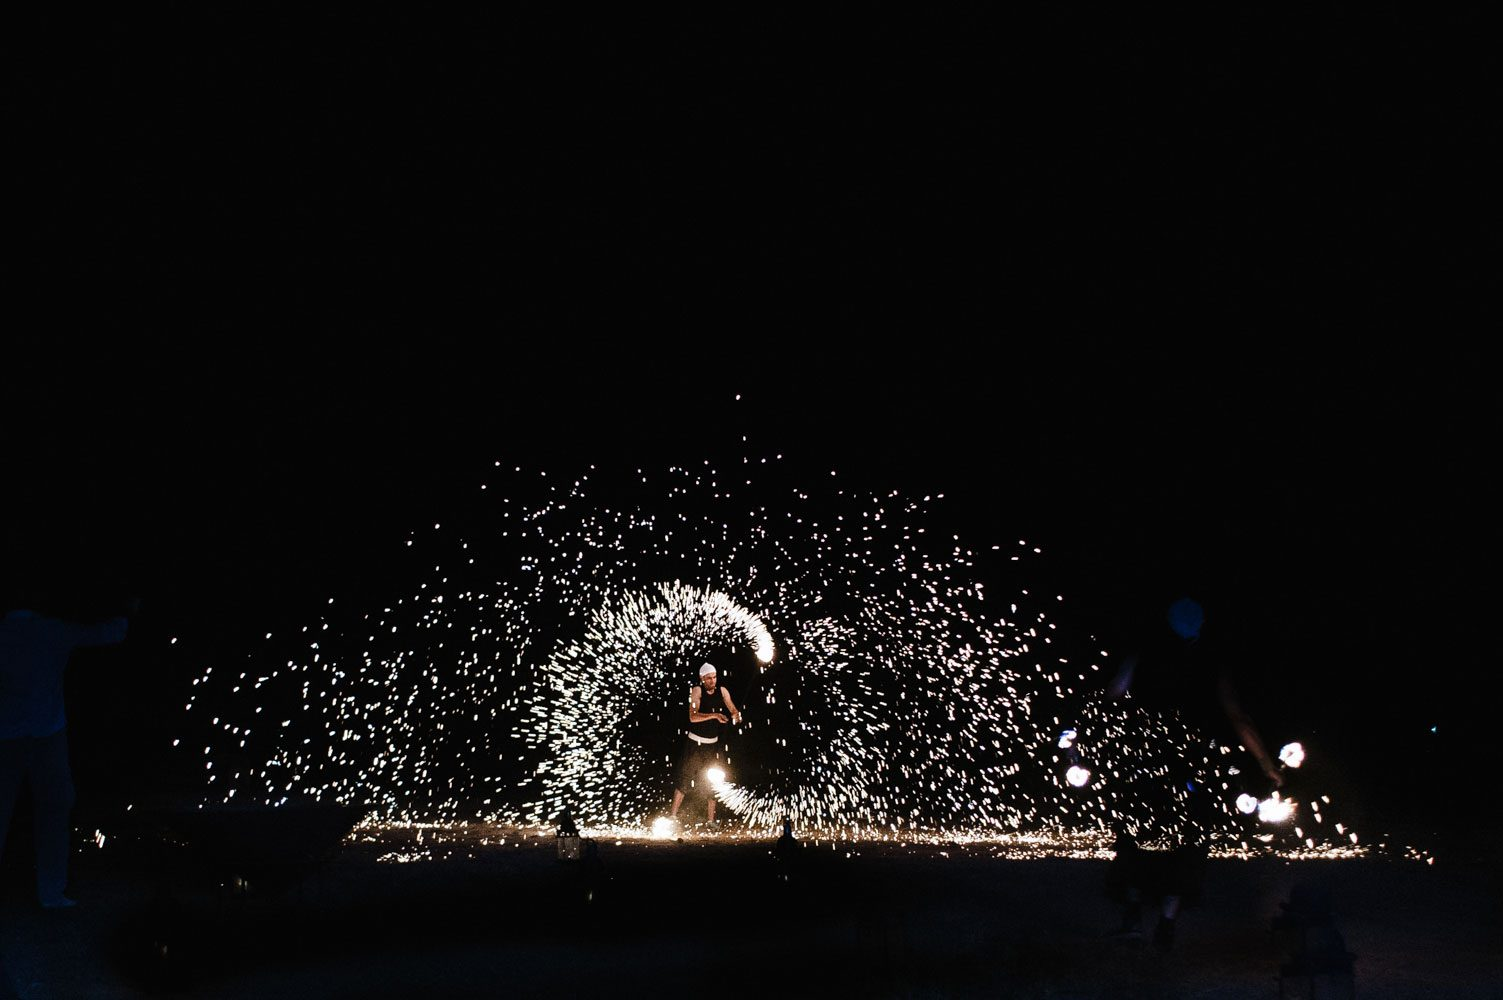 fire eater performs